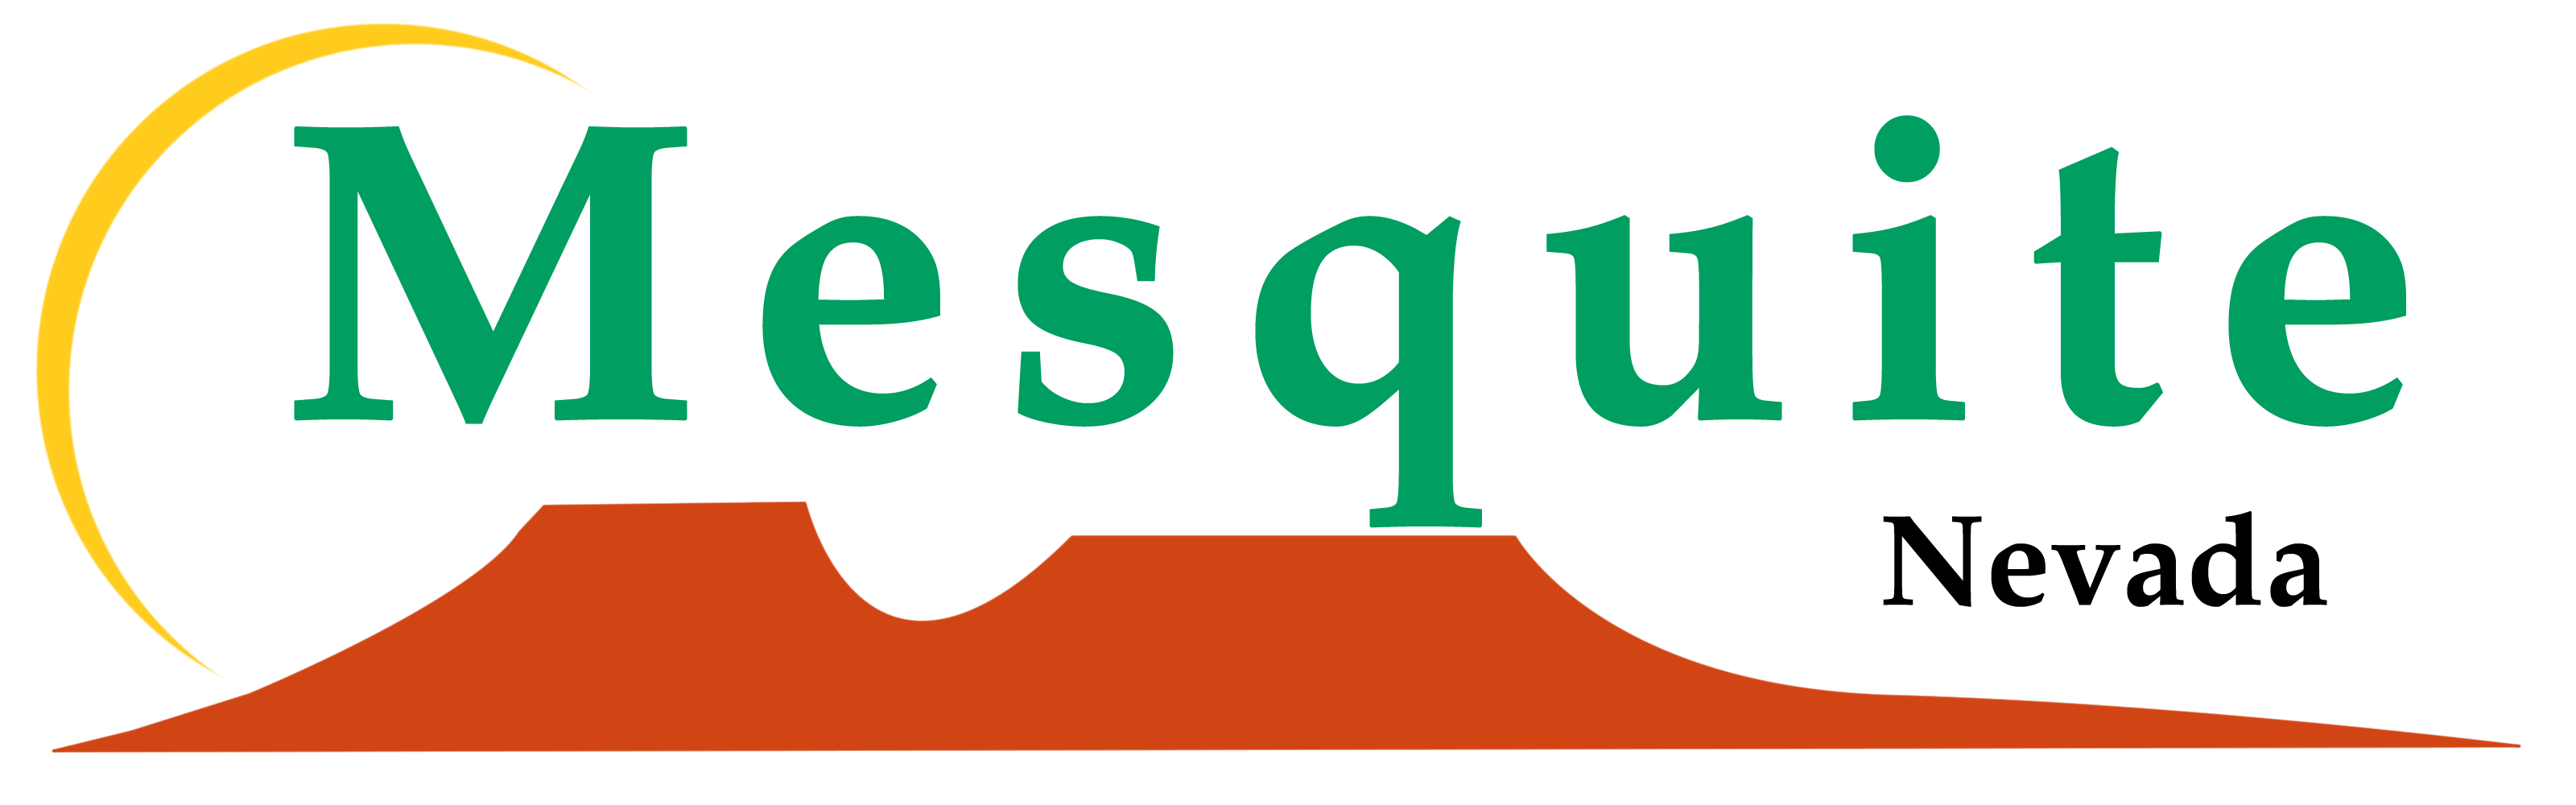 City of Mesquite logo 2020